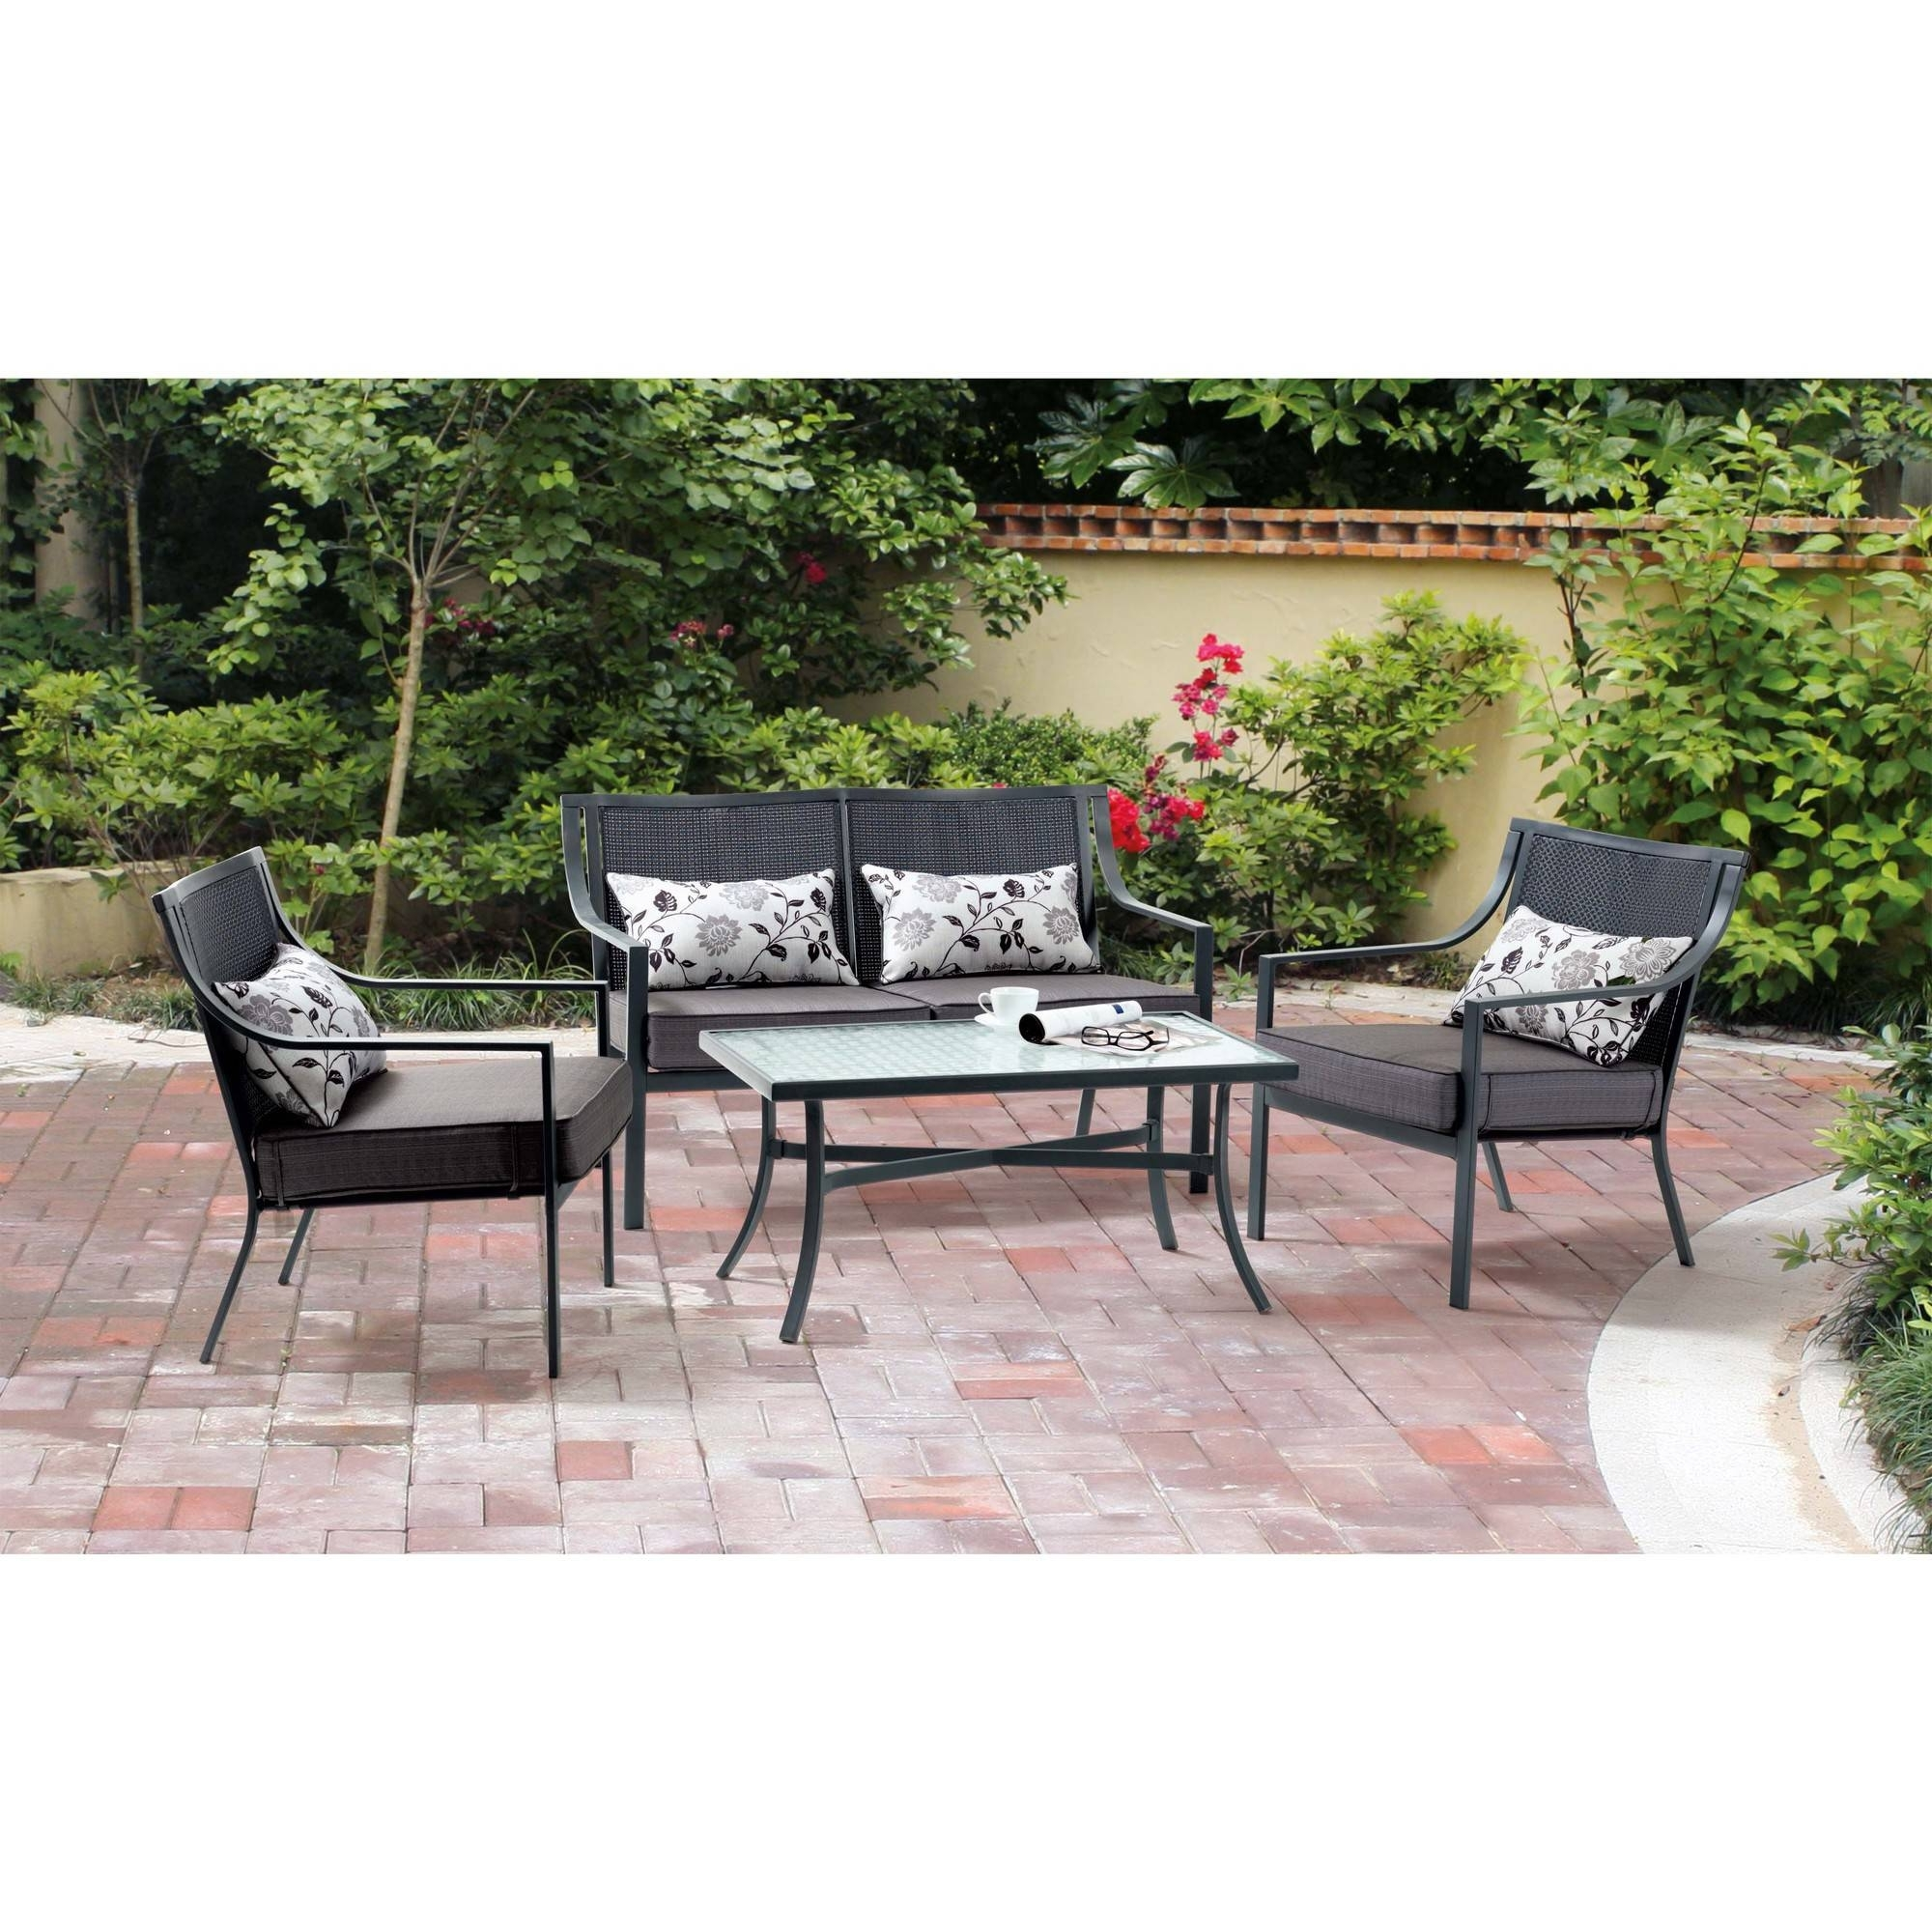 Preferred Mainstays Alexandra Square 4 Piece Patio Conversation Set, Grey With With Regard To Resin Conversation Patio Sets (View 20 of 20)